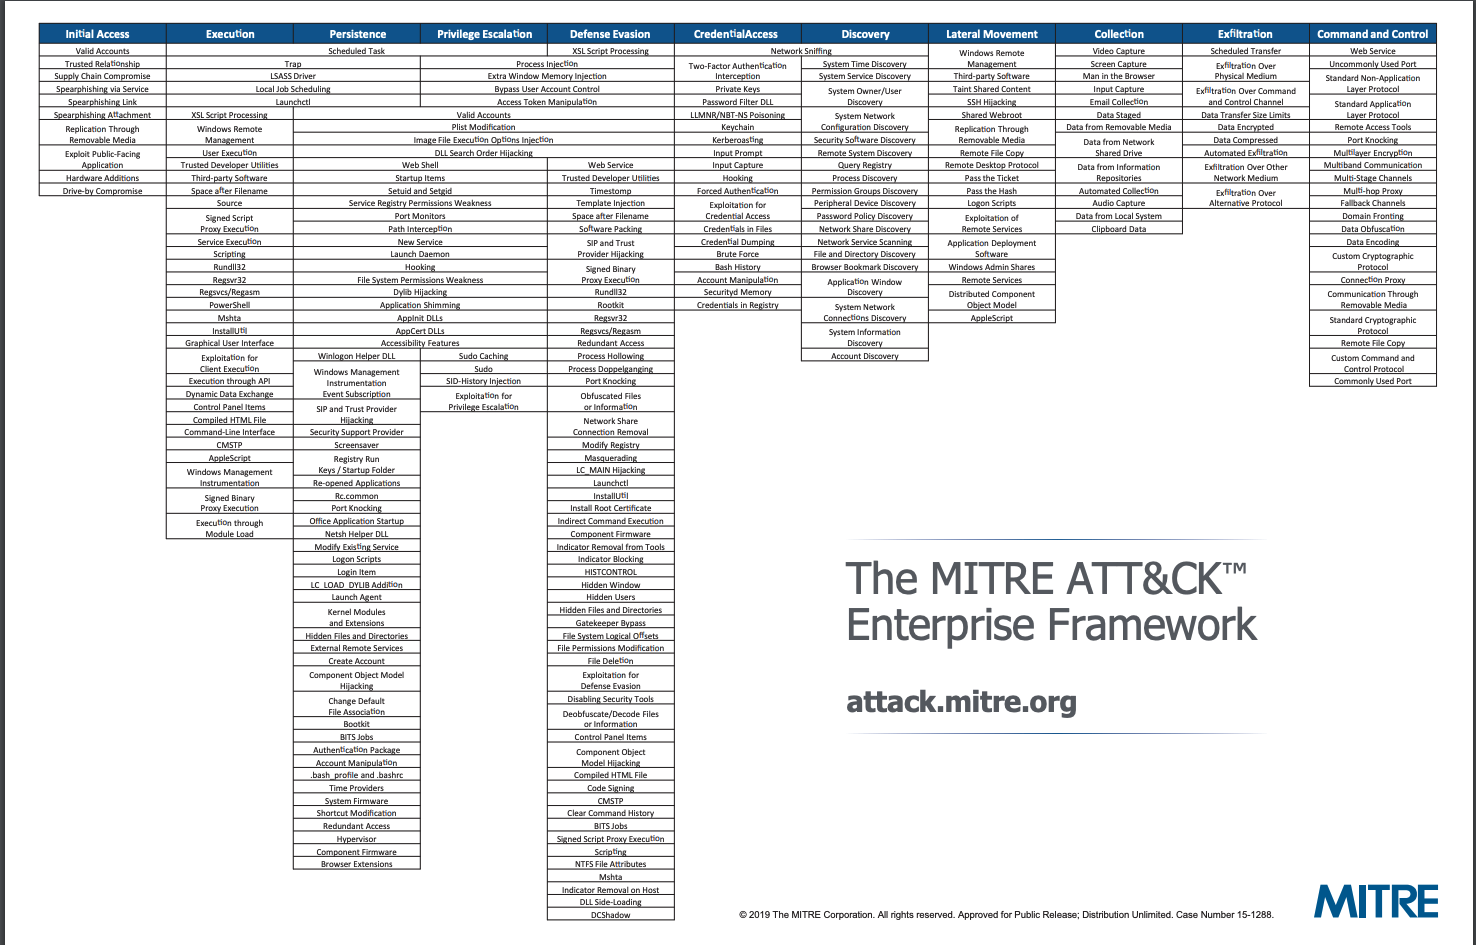 MITRE ATT&CK Framework for Enterprises